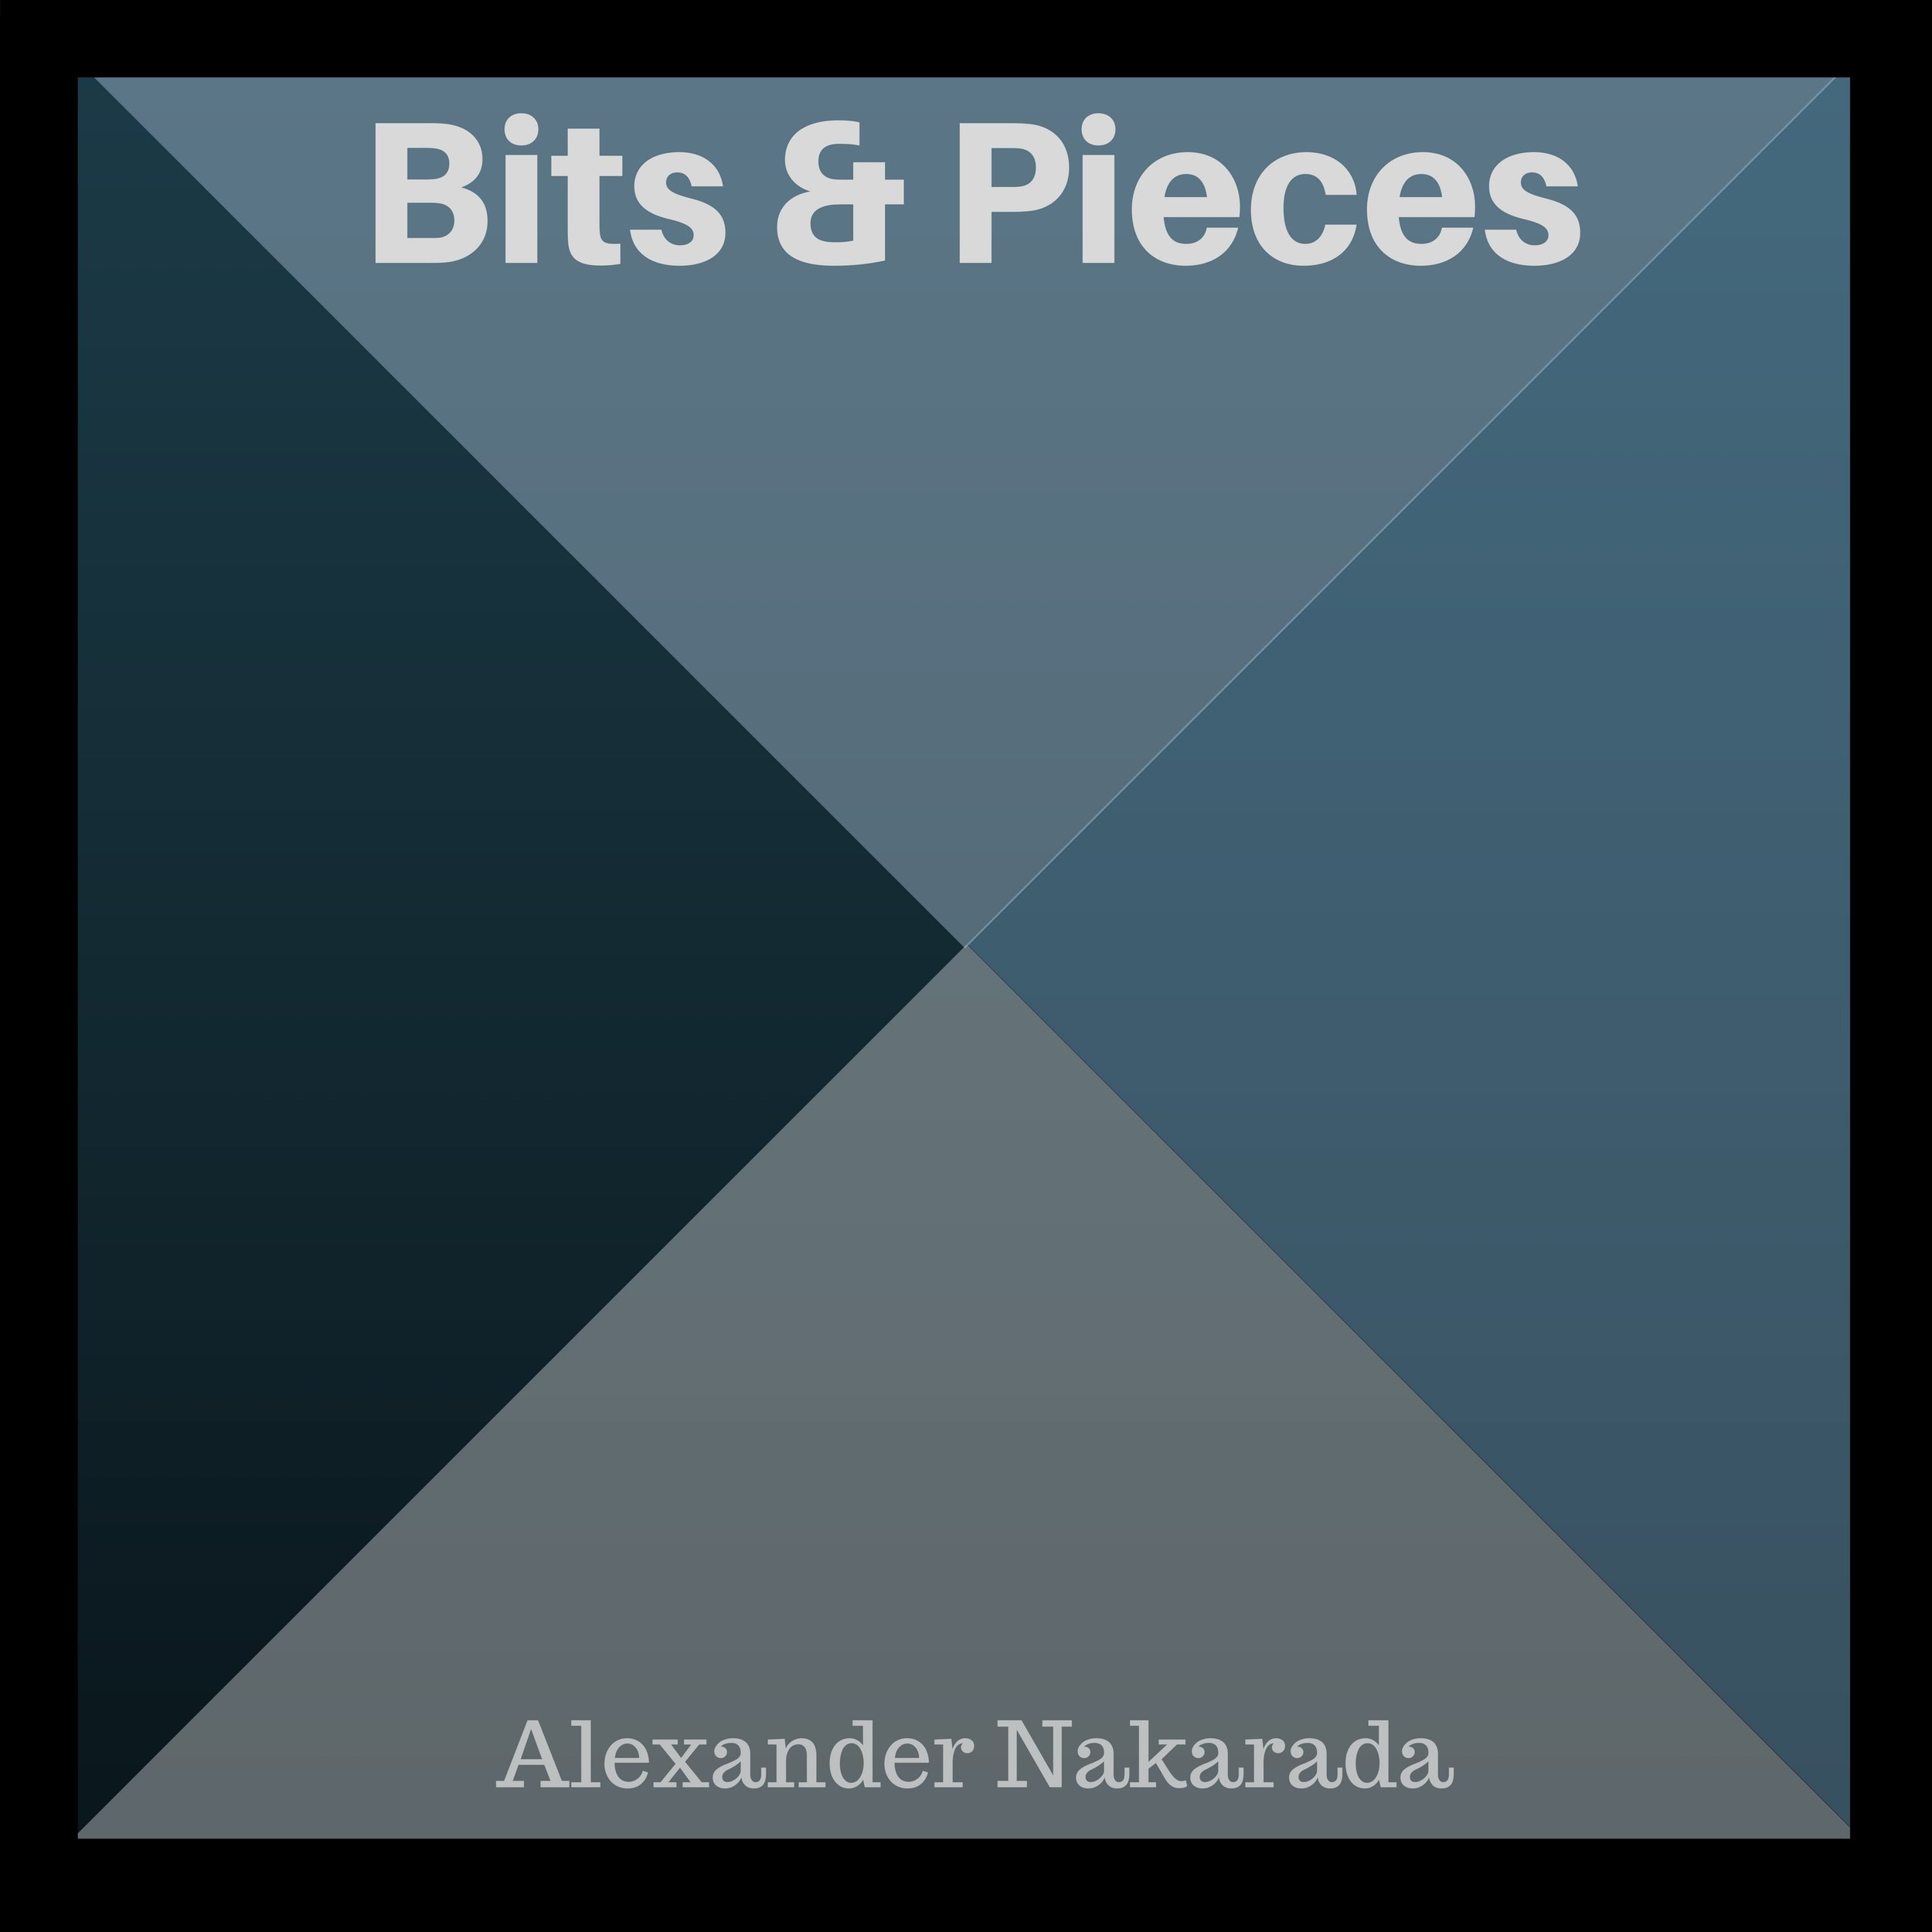 6. Bits & Pieces, vol. 1 - A collection of 15 pieces in different genres.